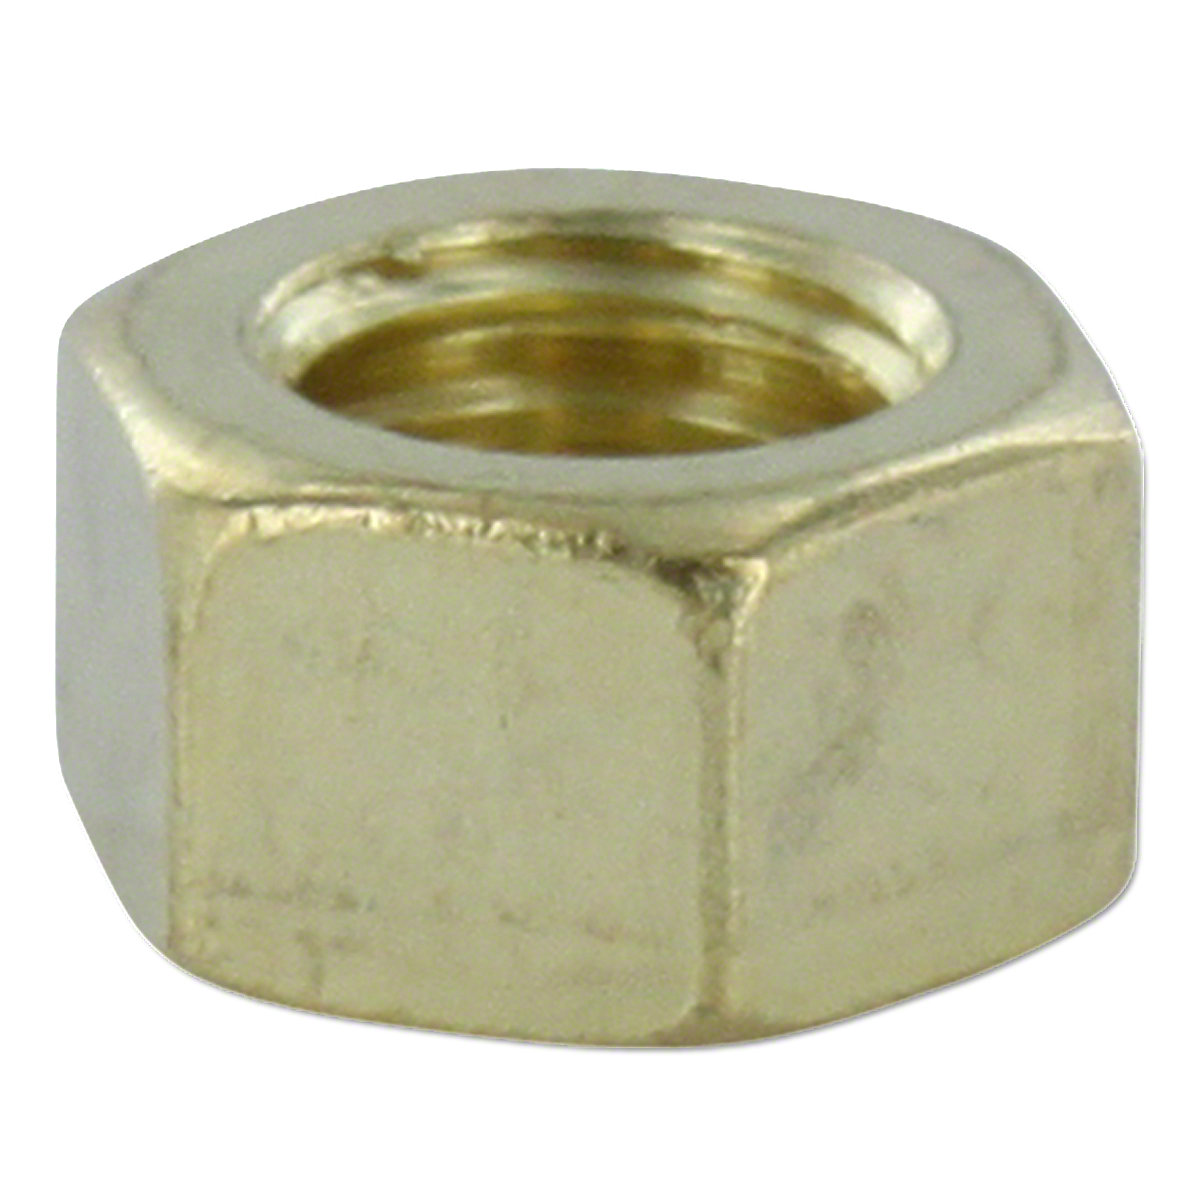 Brass Manifold Nut For Allis Chalmers B, C, CA, D10, D12, D14, D15, H3, I40, I400, I60, I600, IB, RC, WC, WD, WF, Gas or LP: WD45